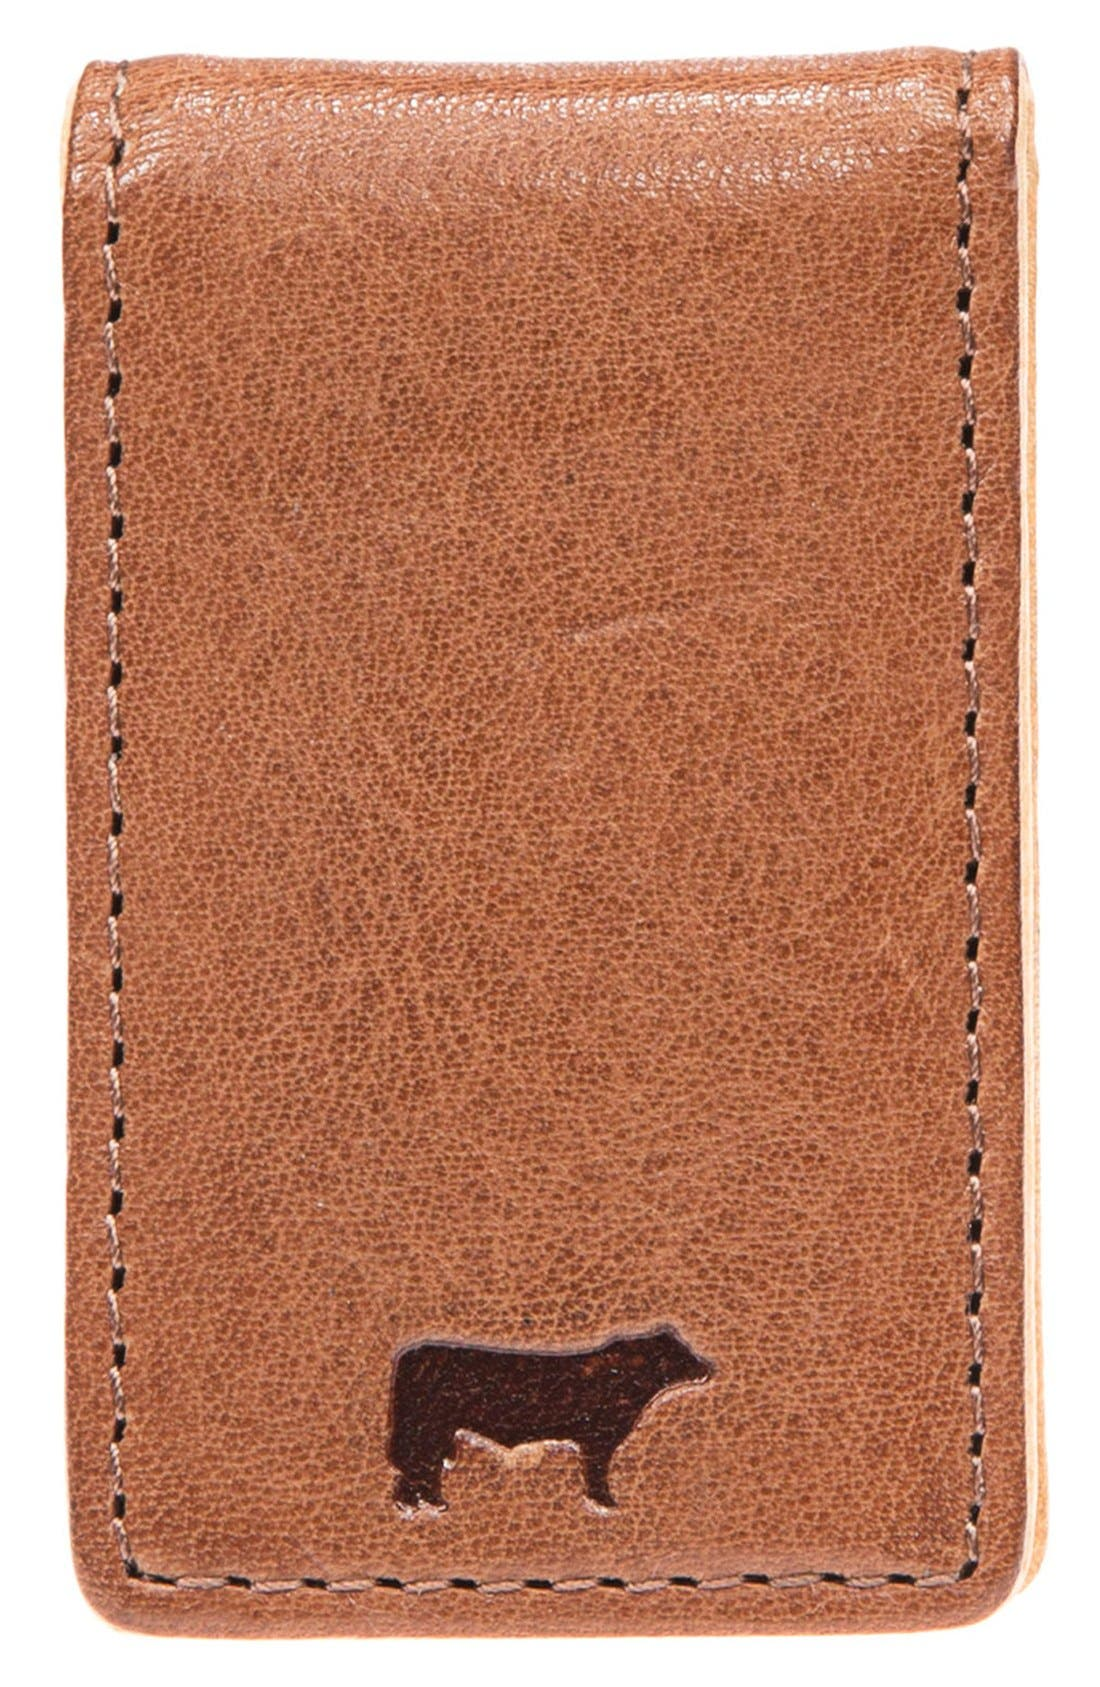 Alternate Image 1 Selected - Will Leather Goods 'Cibreo' Money Clip